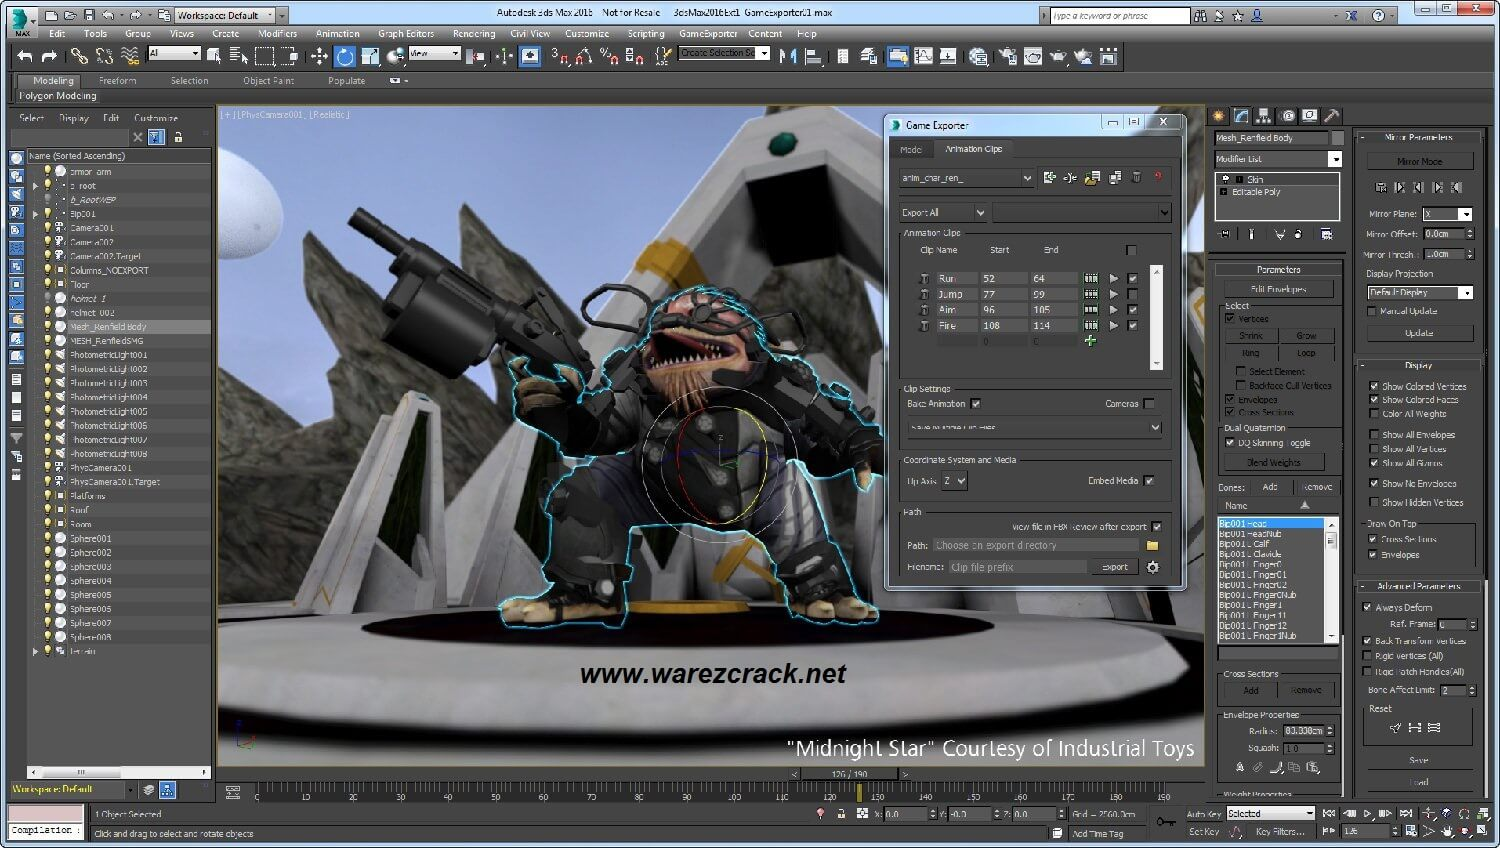 Autodesk 3ds max 2017 64 bit crack free download for 3ds max design